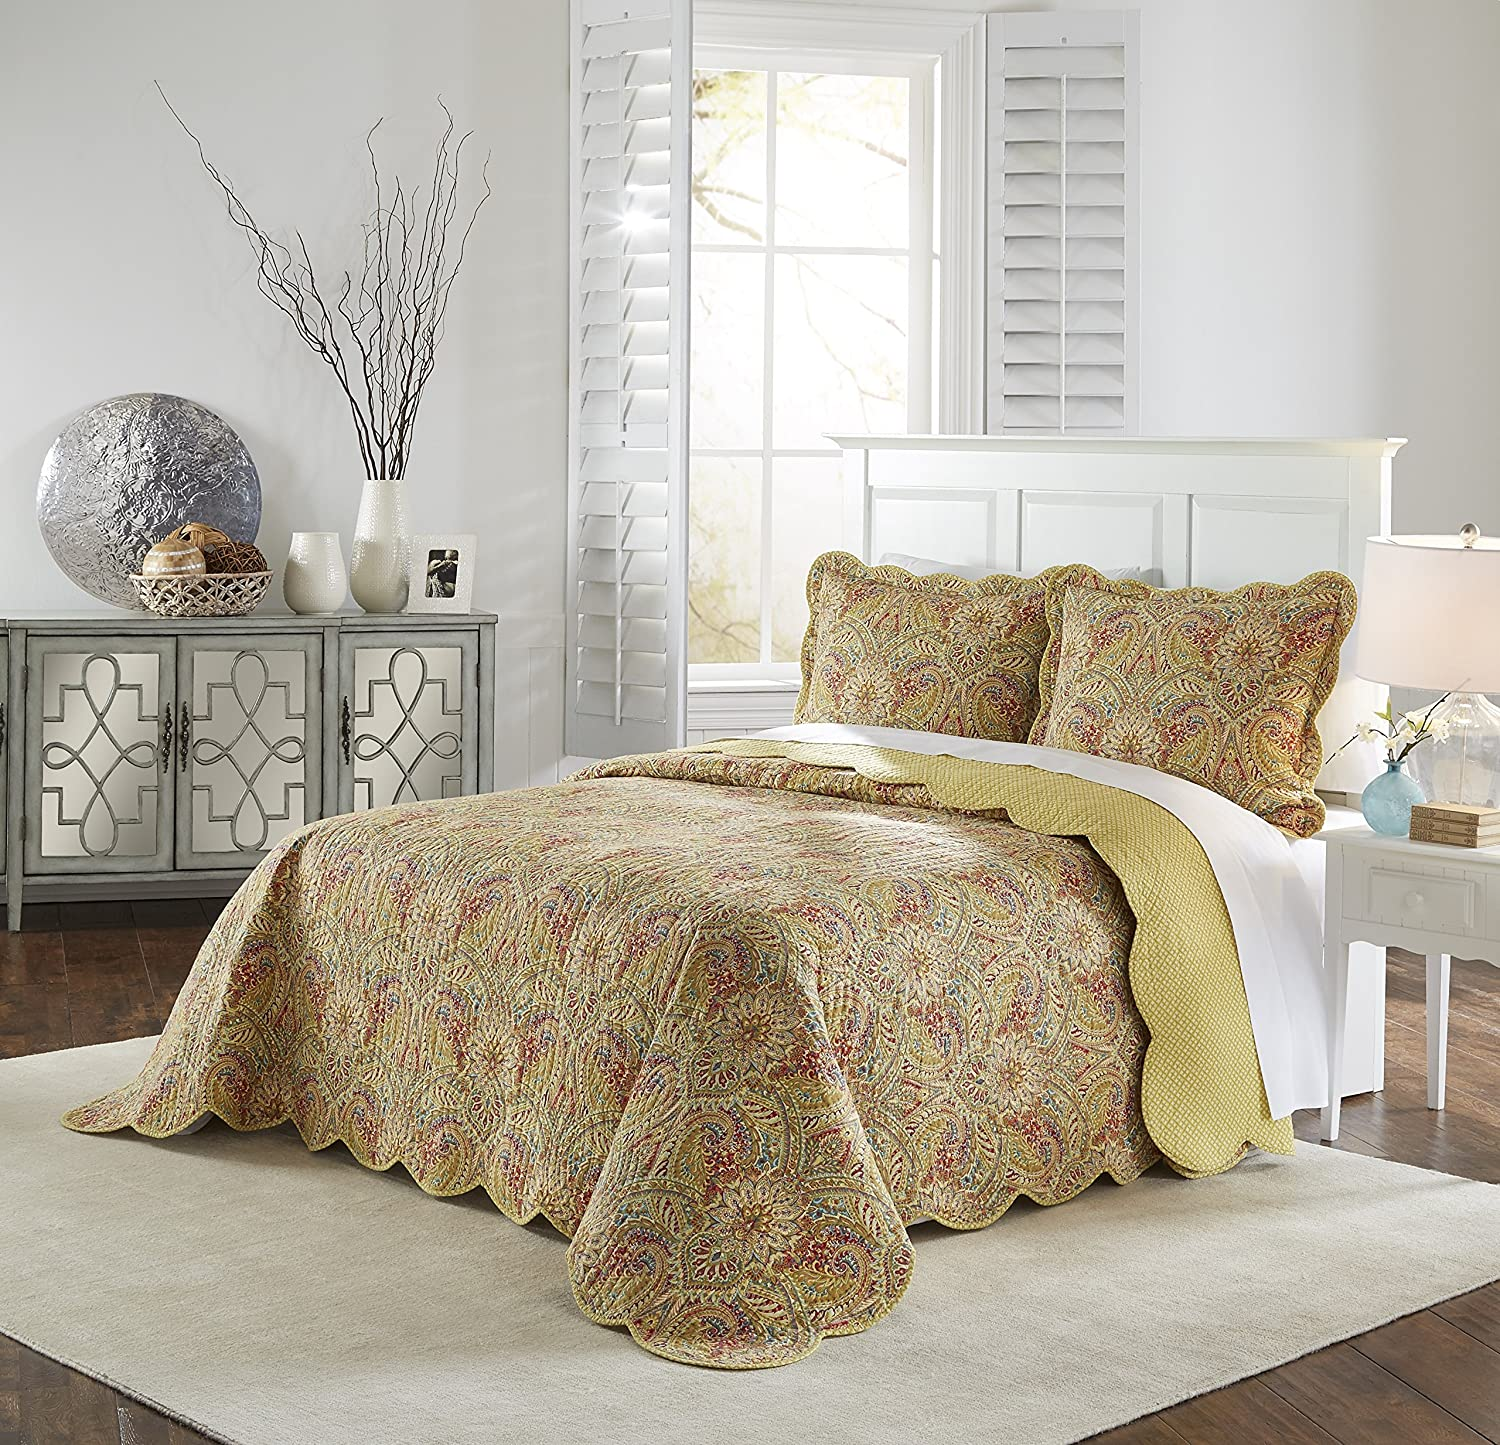 Waverly Swept Away Bedspread Collection, King/Cal King